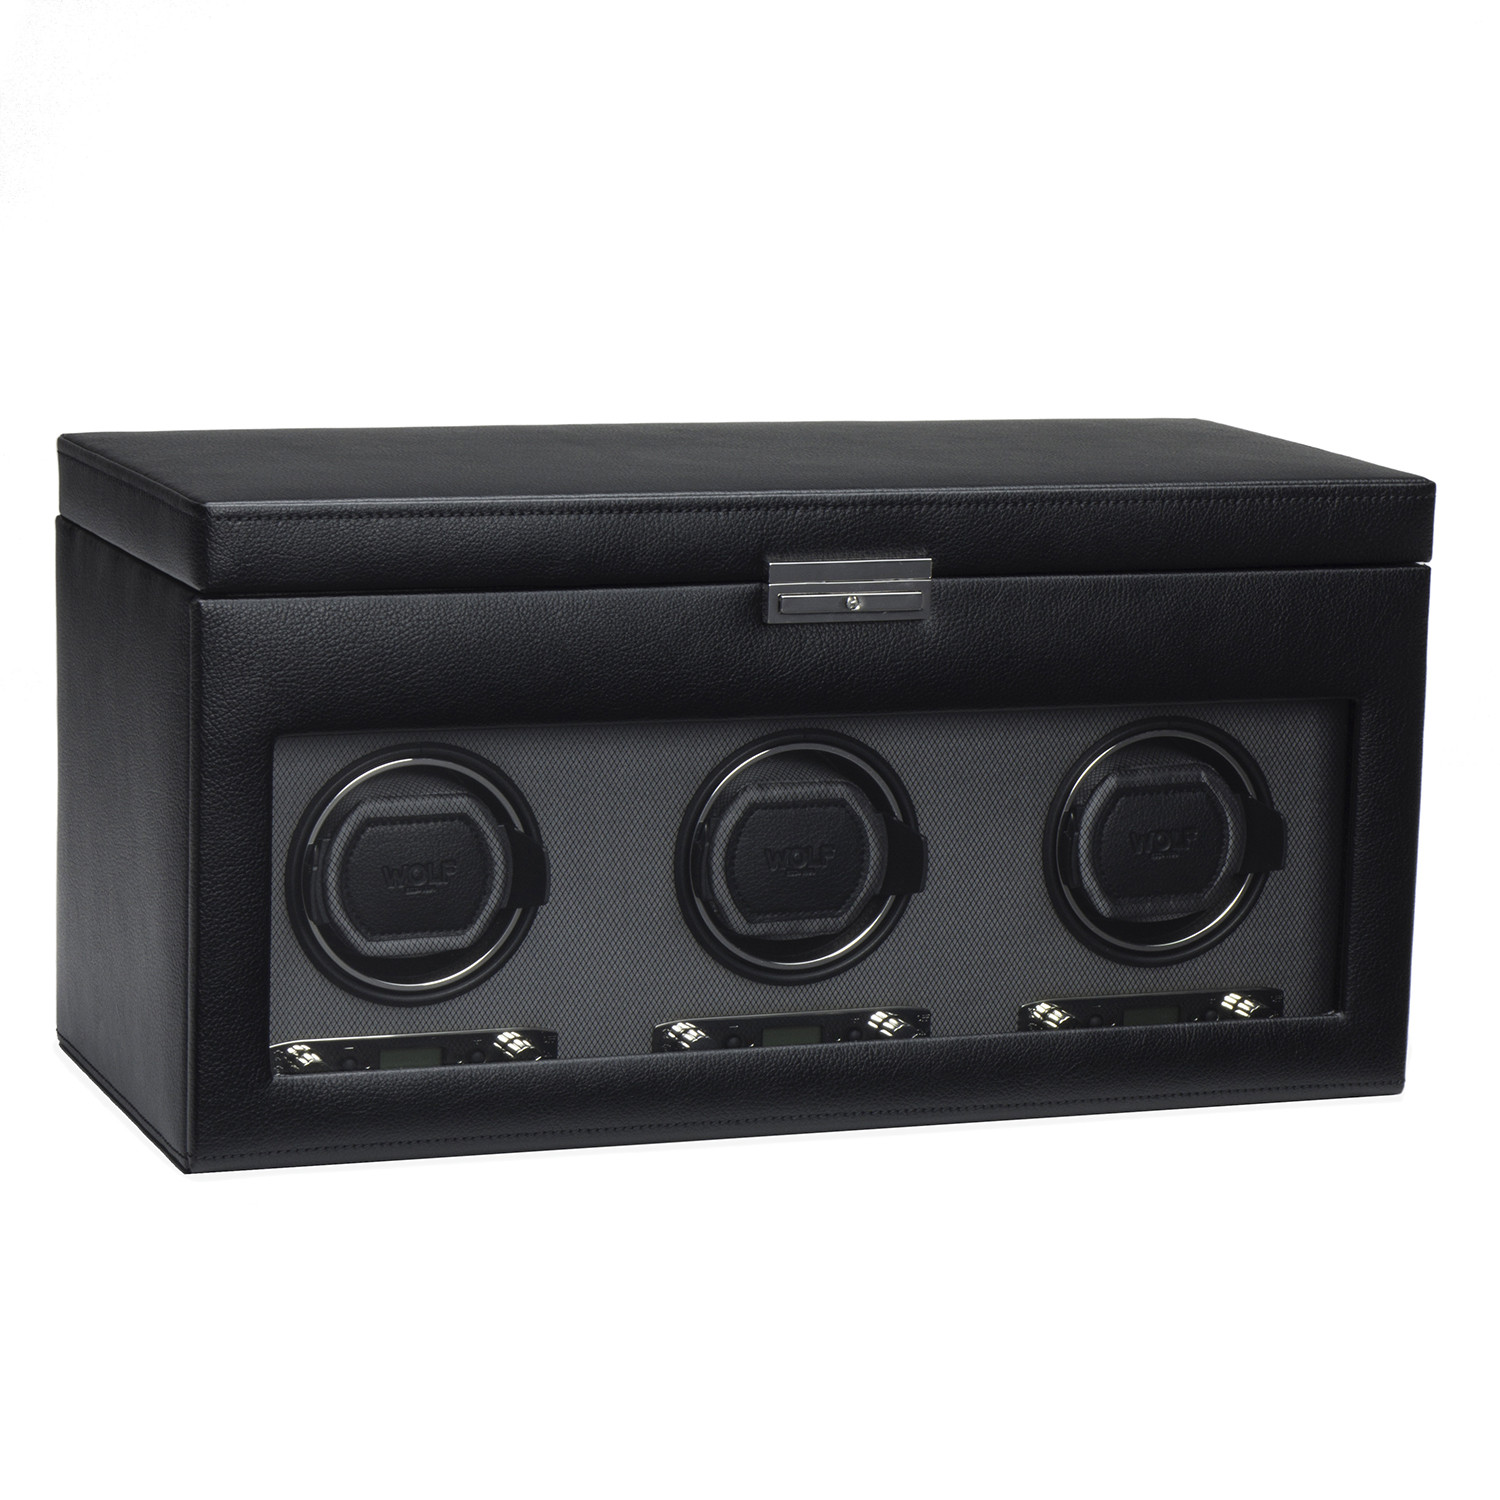 New Wolf Designs Triple Watch Winder